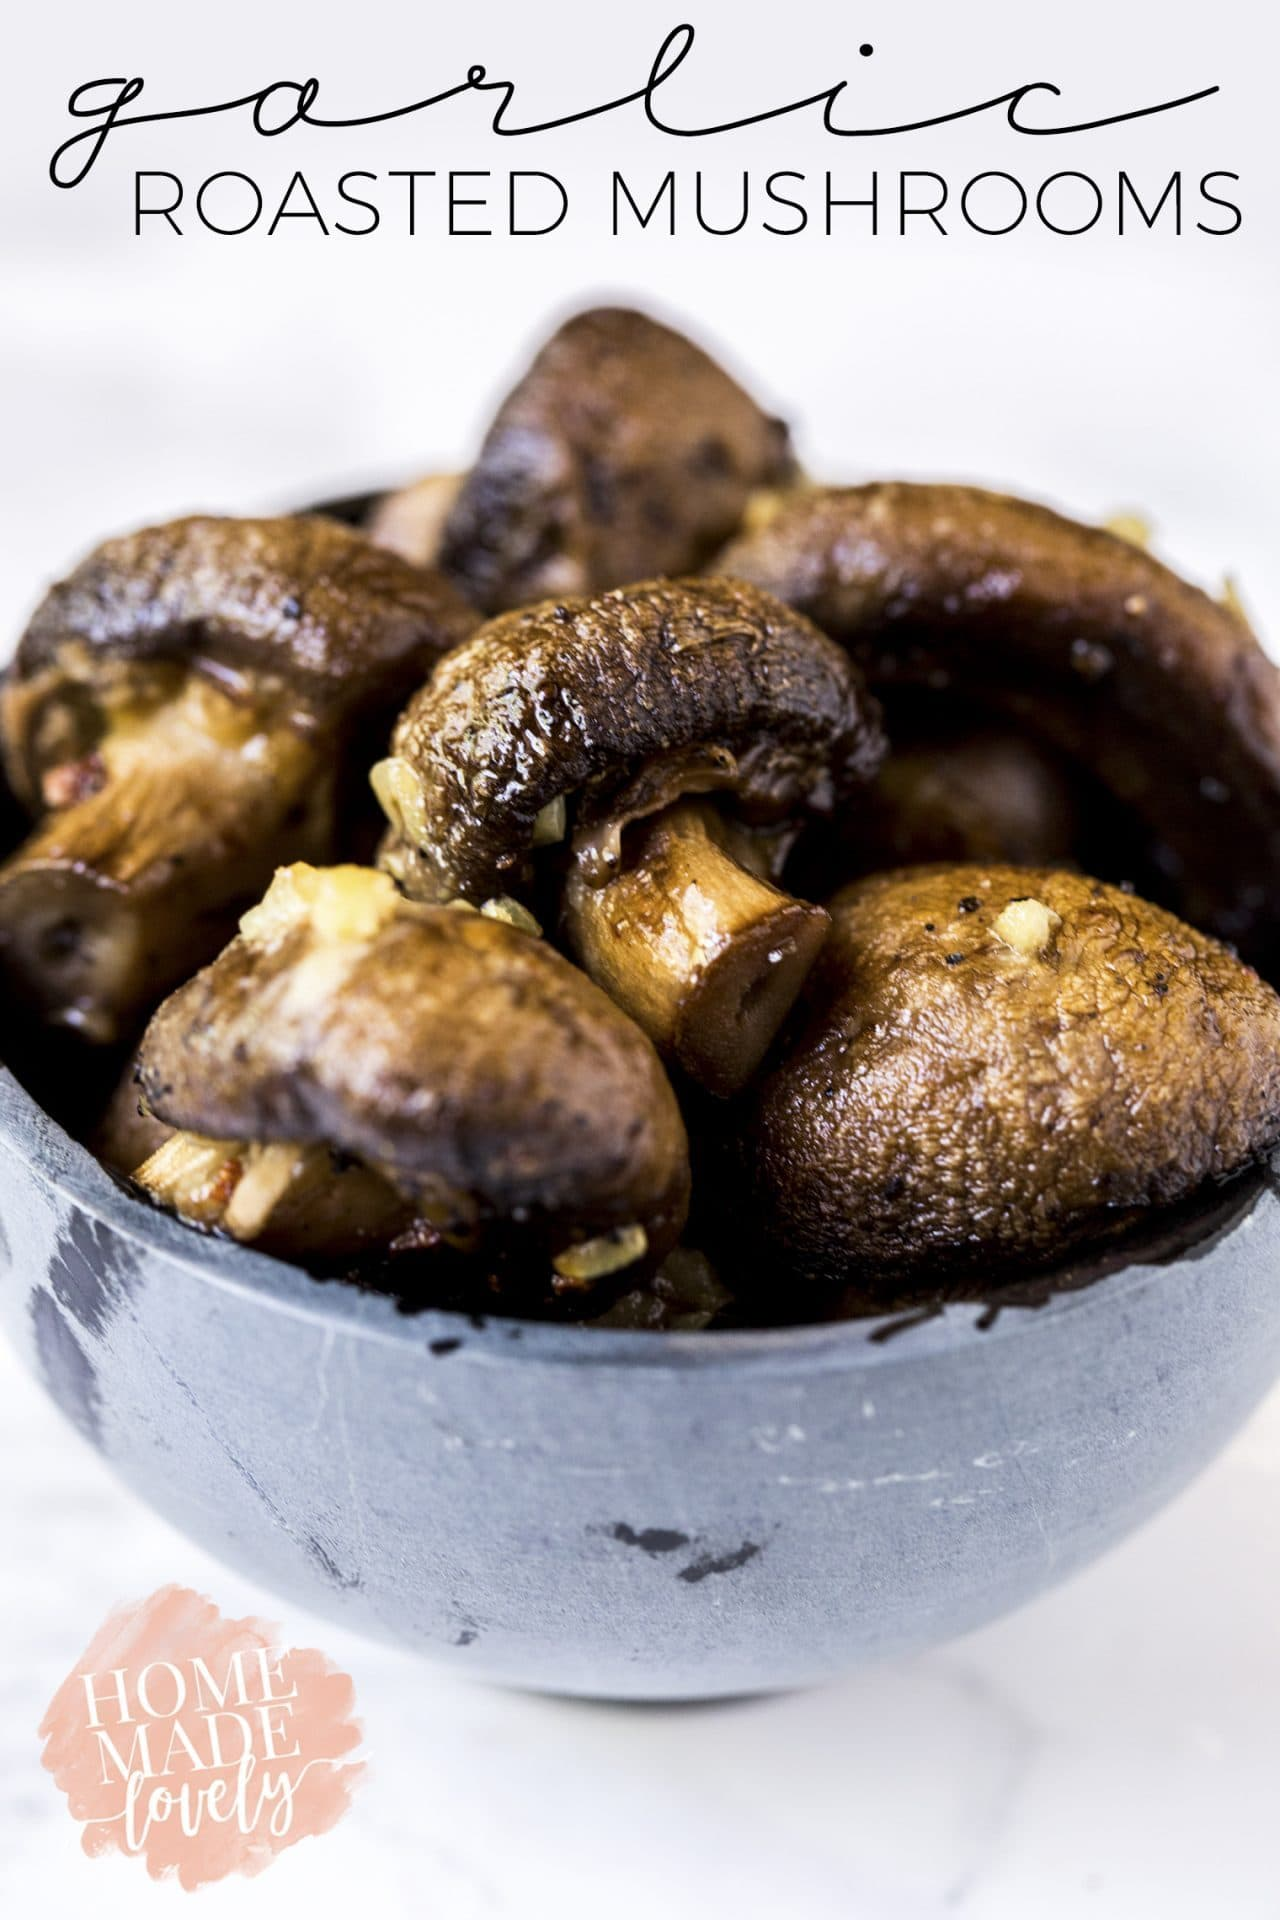 Mushroom Dishes to Pair with Pinot Noir - garlic roasted mushrooms